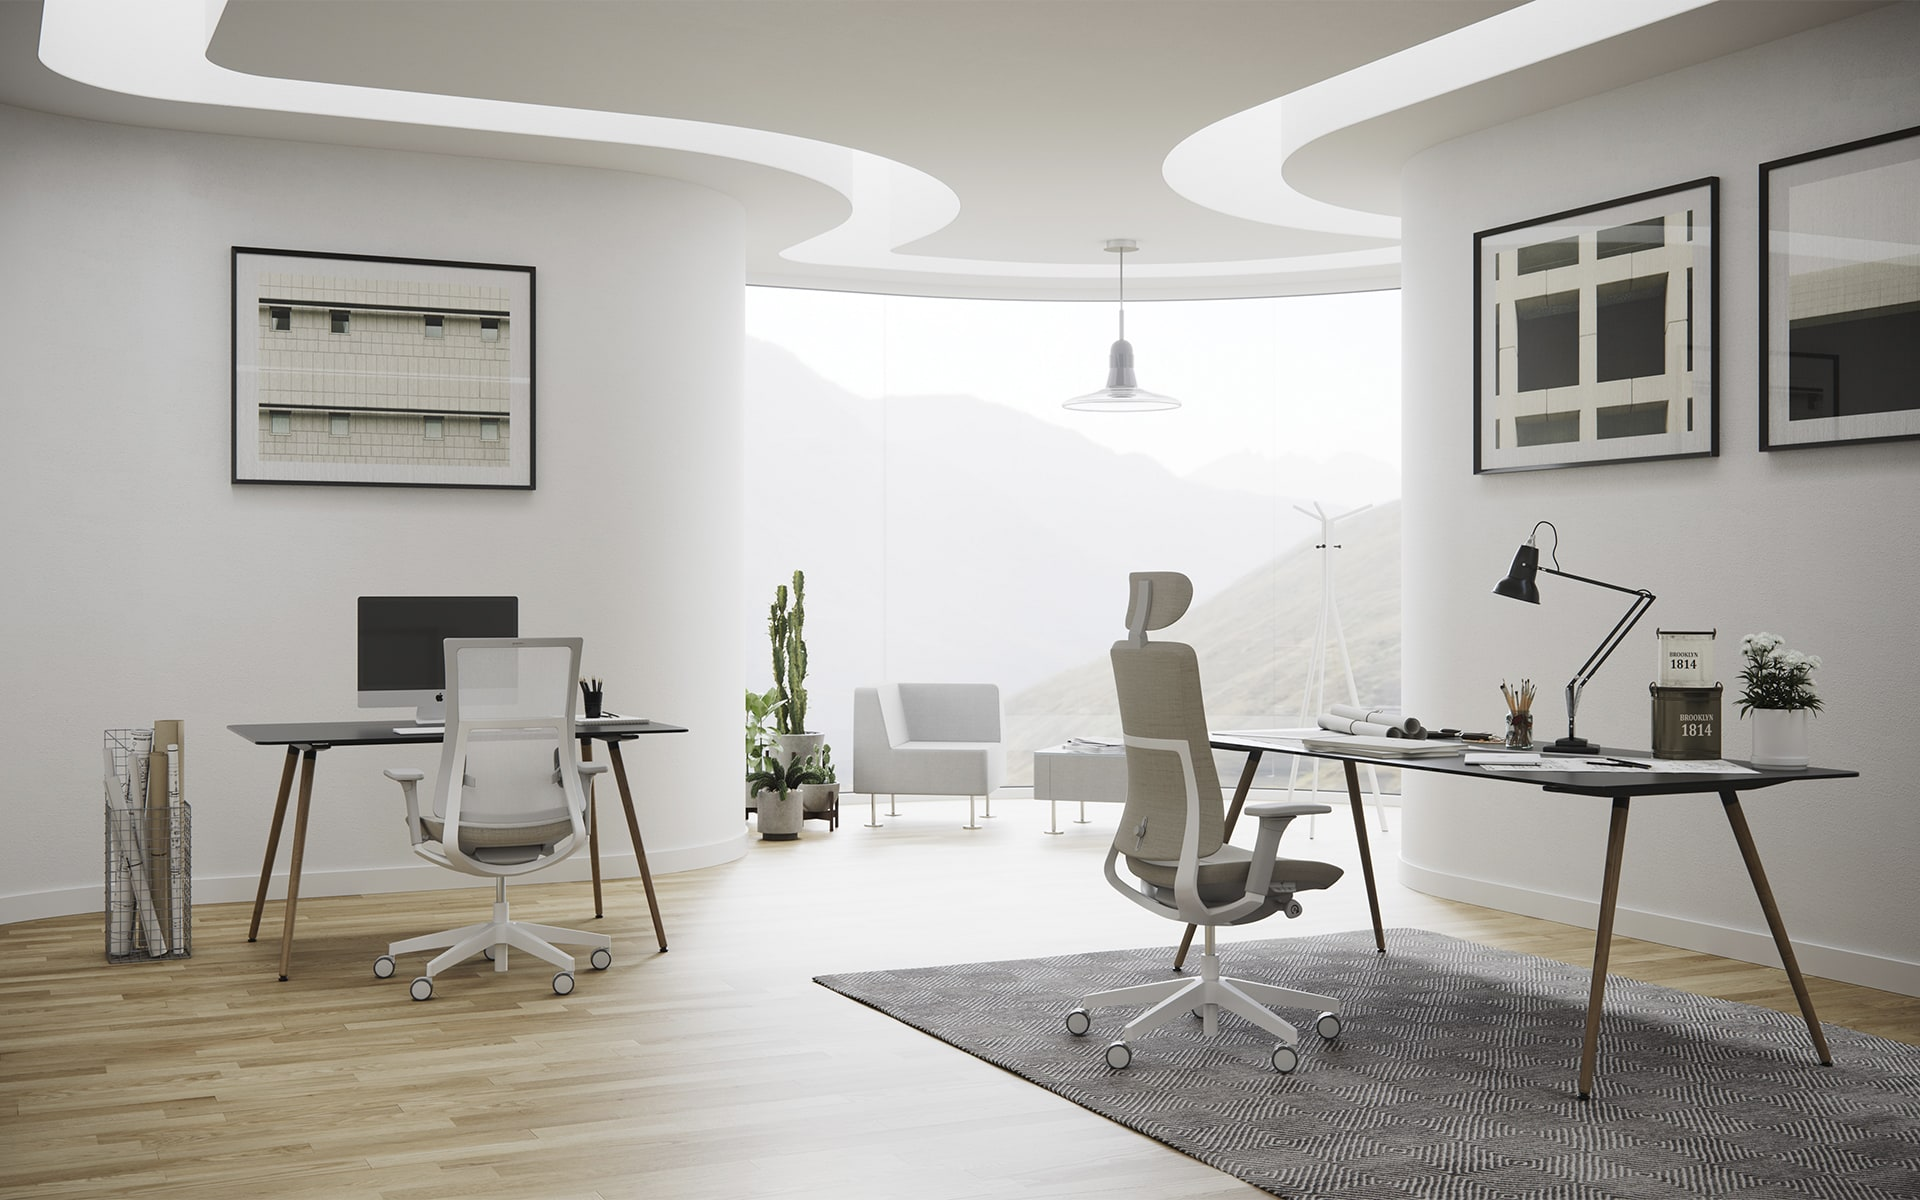 Profim Violle office chair by ITO Design in black and light grey